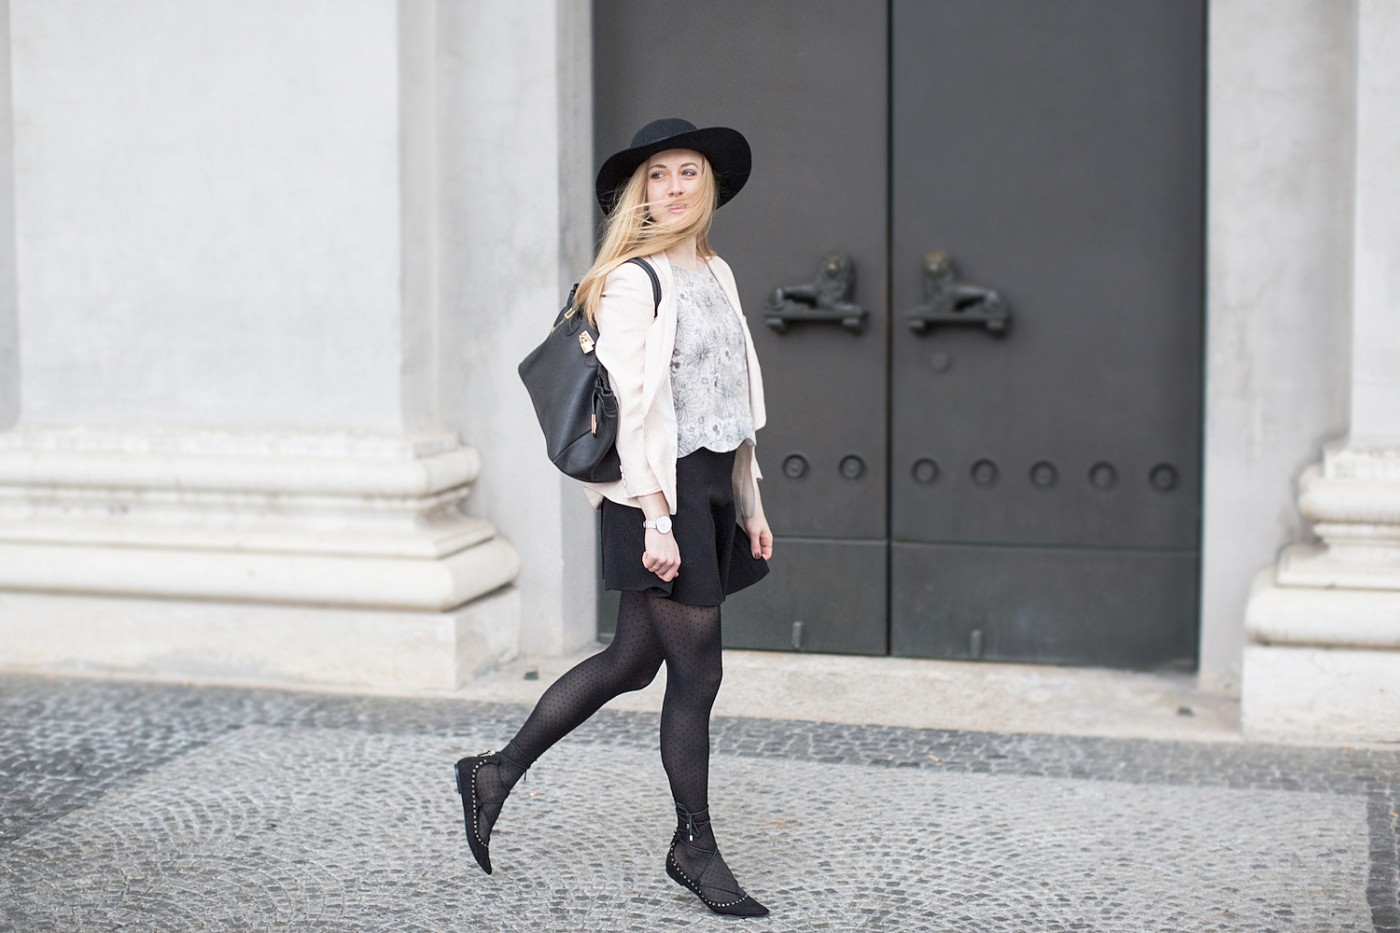 Dotted tights, Alexandra Kasper Photography, blogger outfit with hat, The Golden Bun | München Modeblog, German Fashion Blog, Fashionblogger, new trends